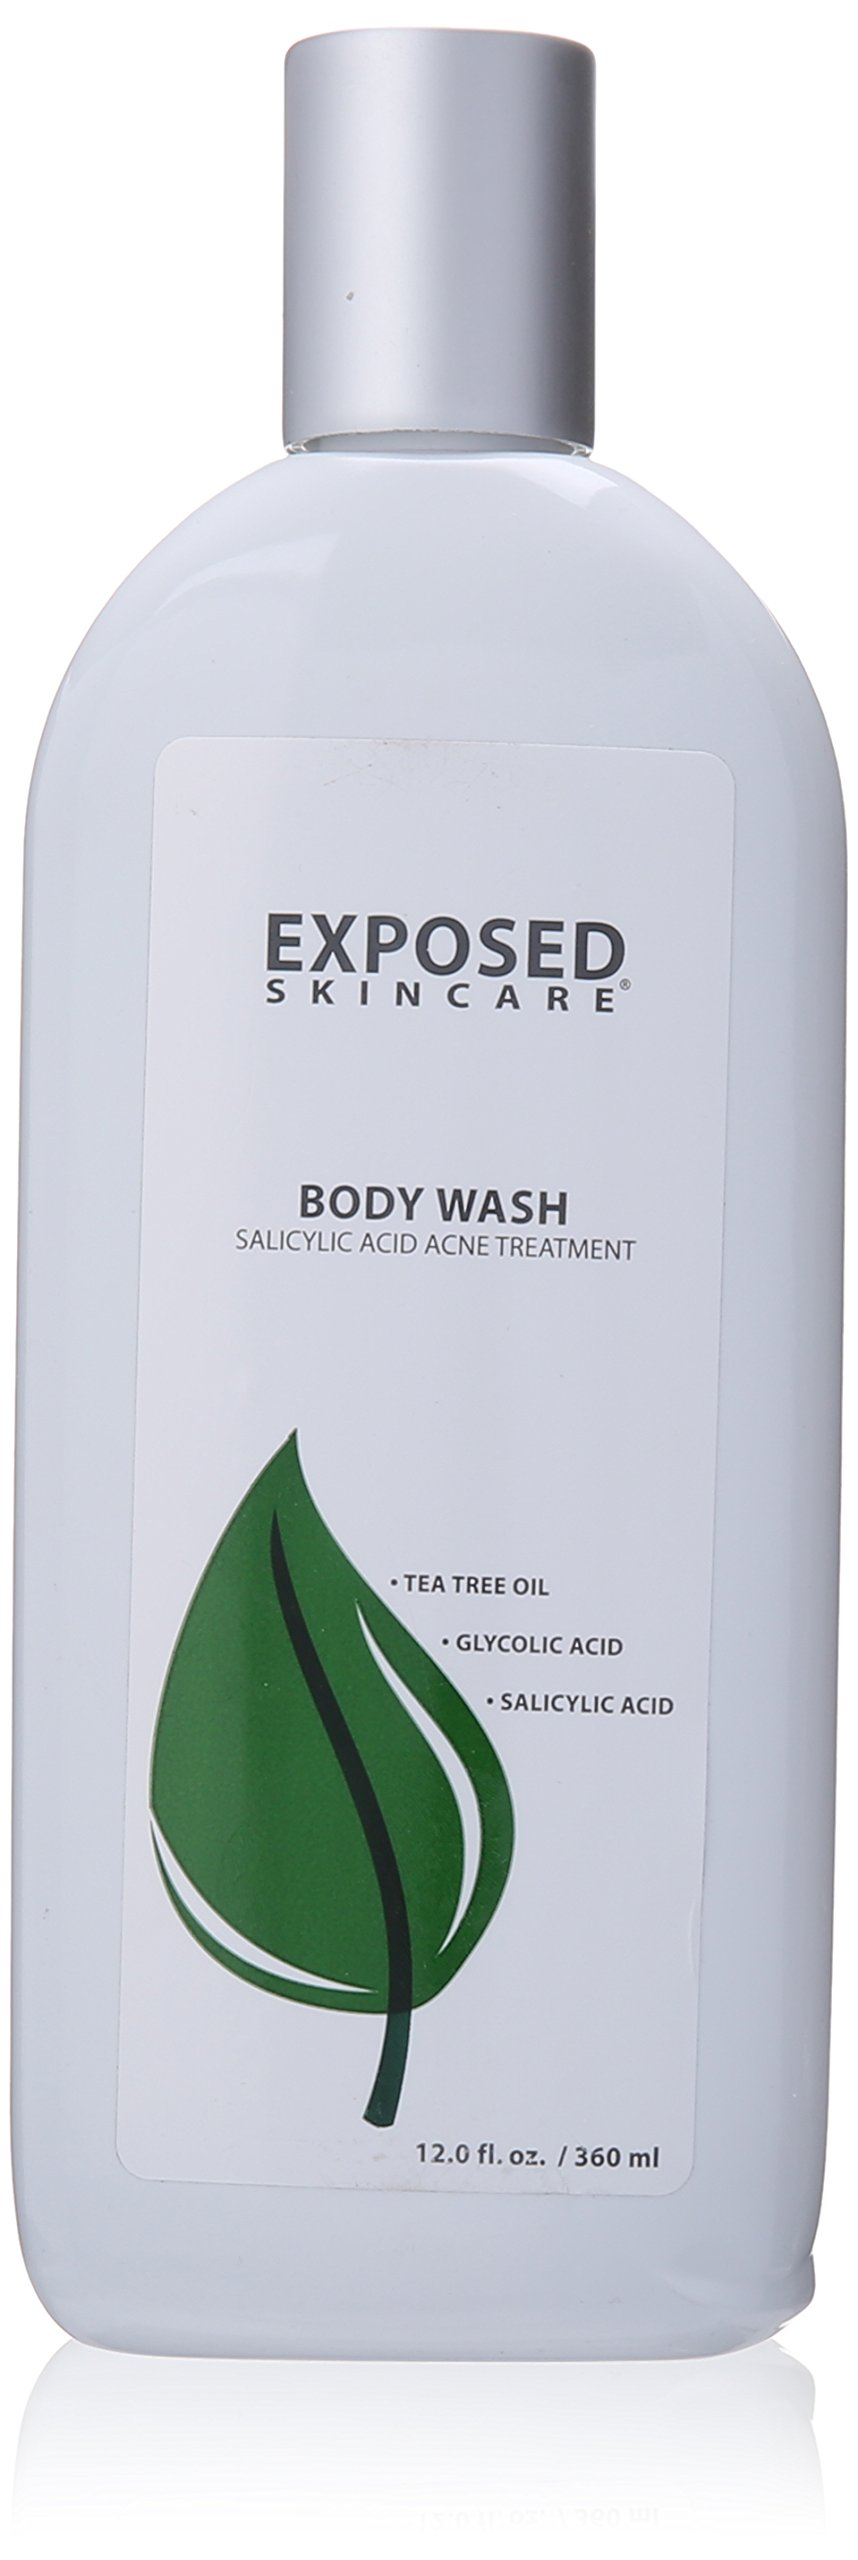 Acne Body Wash with Tea Tree Oil, Hydrated Silica and Salicylic Acid .5% Clear Your Back Acne Fast, 12 ounces by Exposed Skin Care